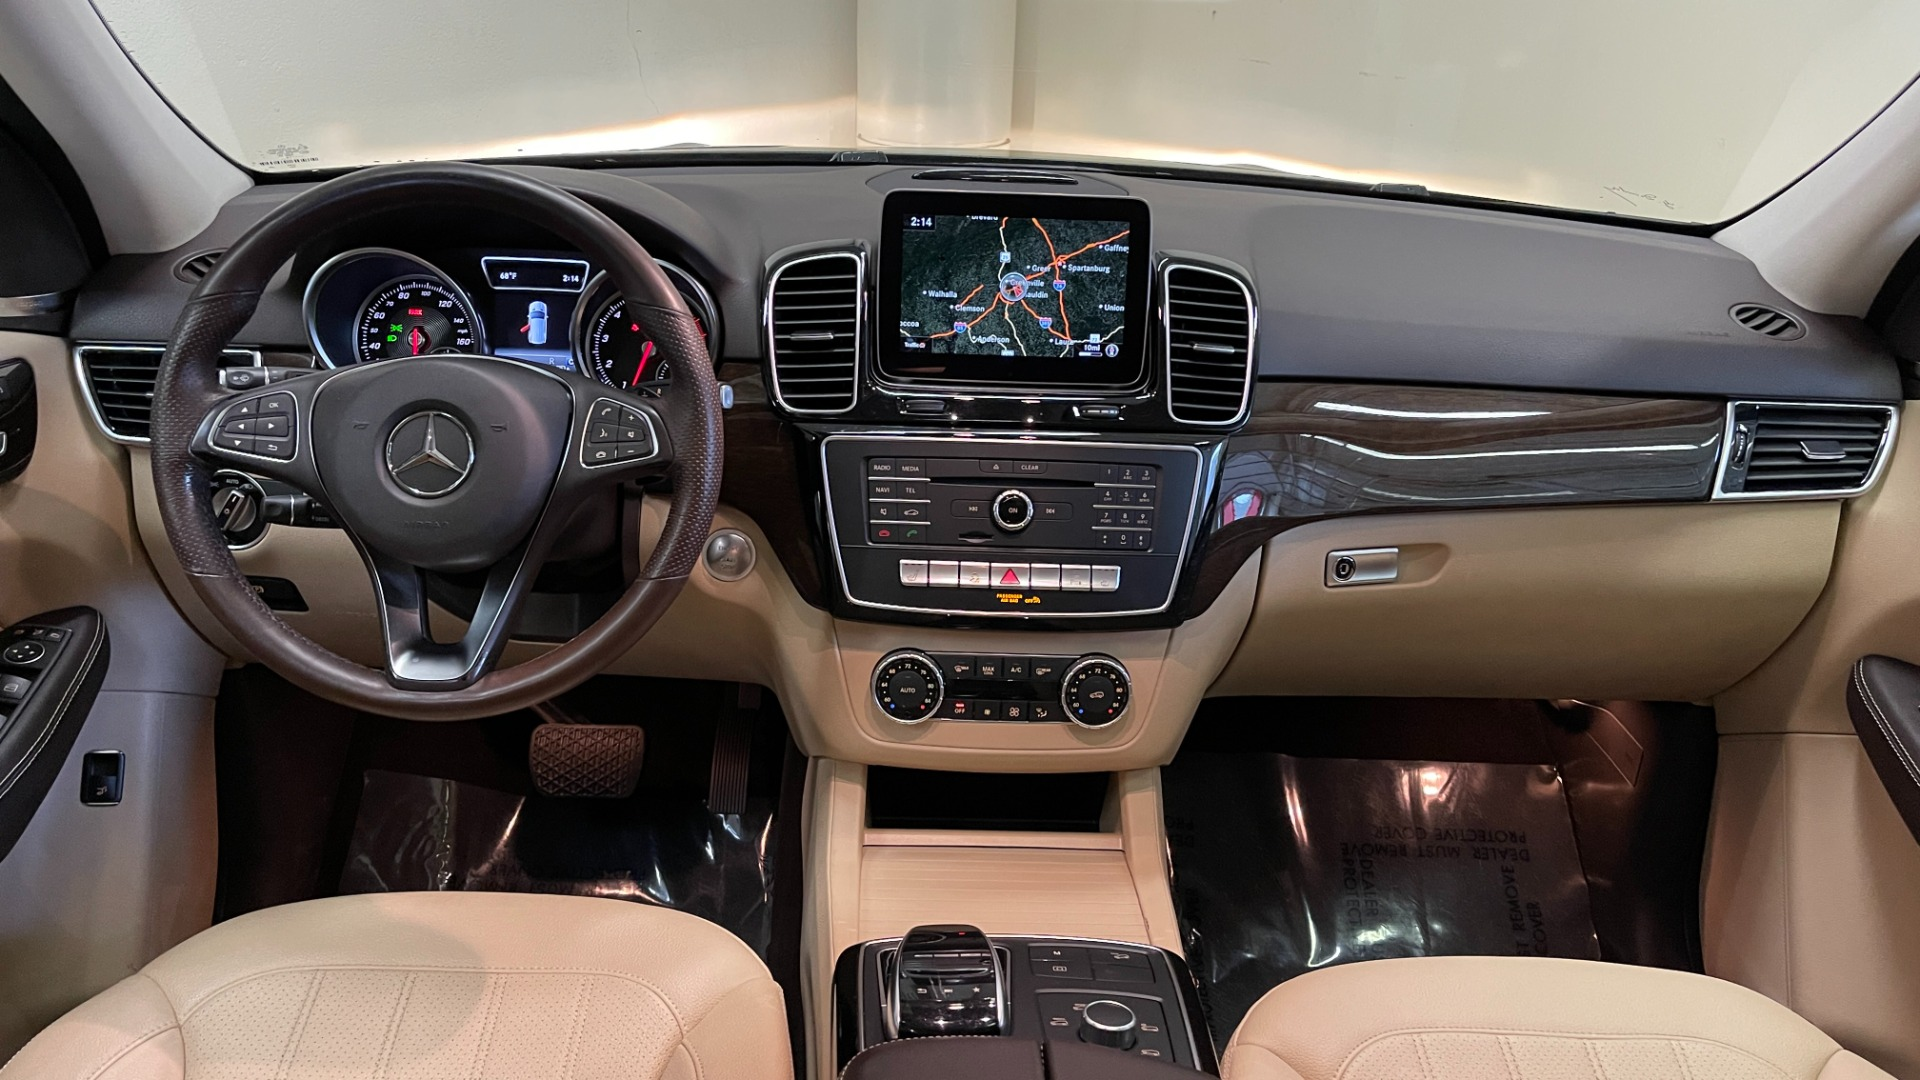 Used 2018 Mercedes-Benz GLE 350 4MATIC PREMIUM / NAV / PARK PILOT / BSA / H/K SND / SURROUND VIEW for sale $40,995 at Formula Imports in Charlotte NC 28227 52